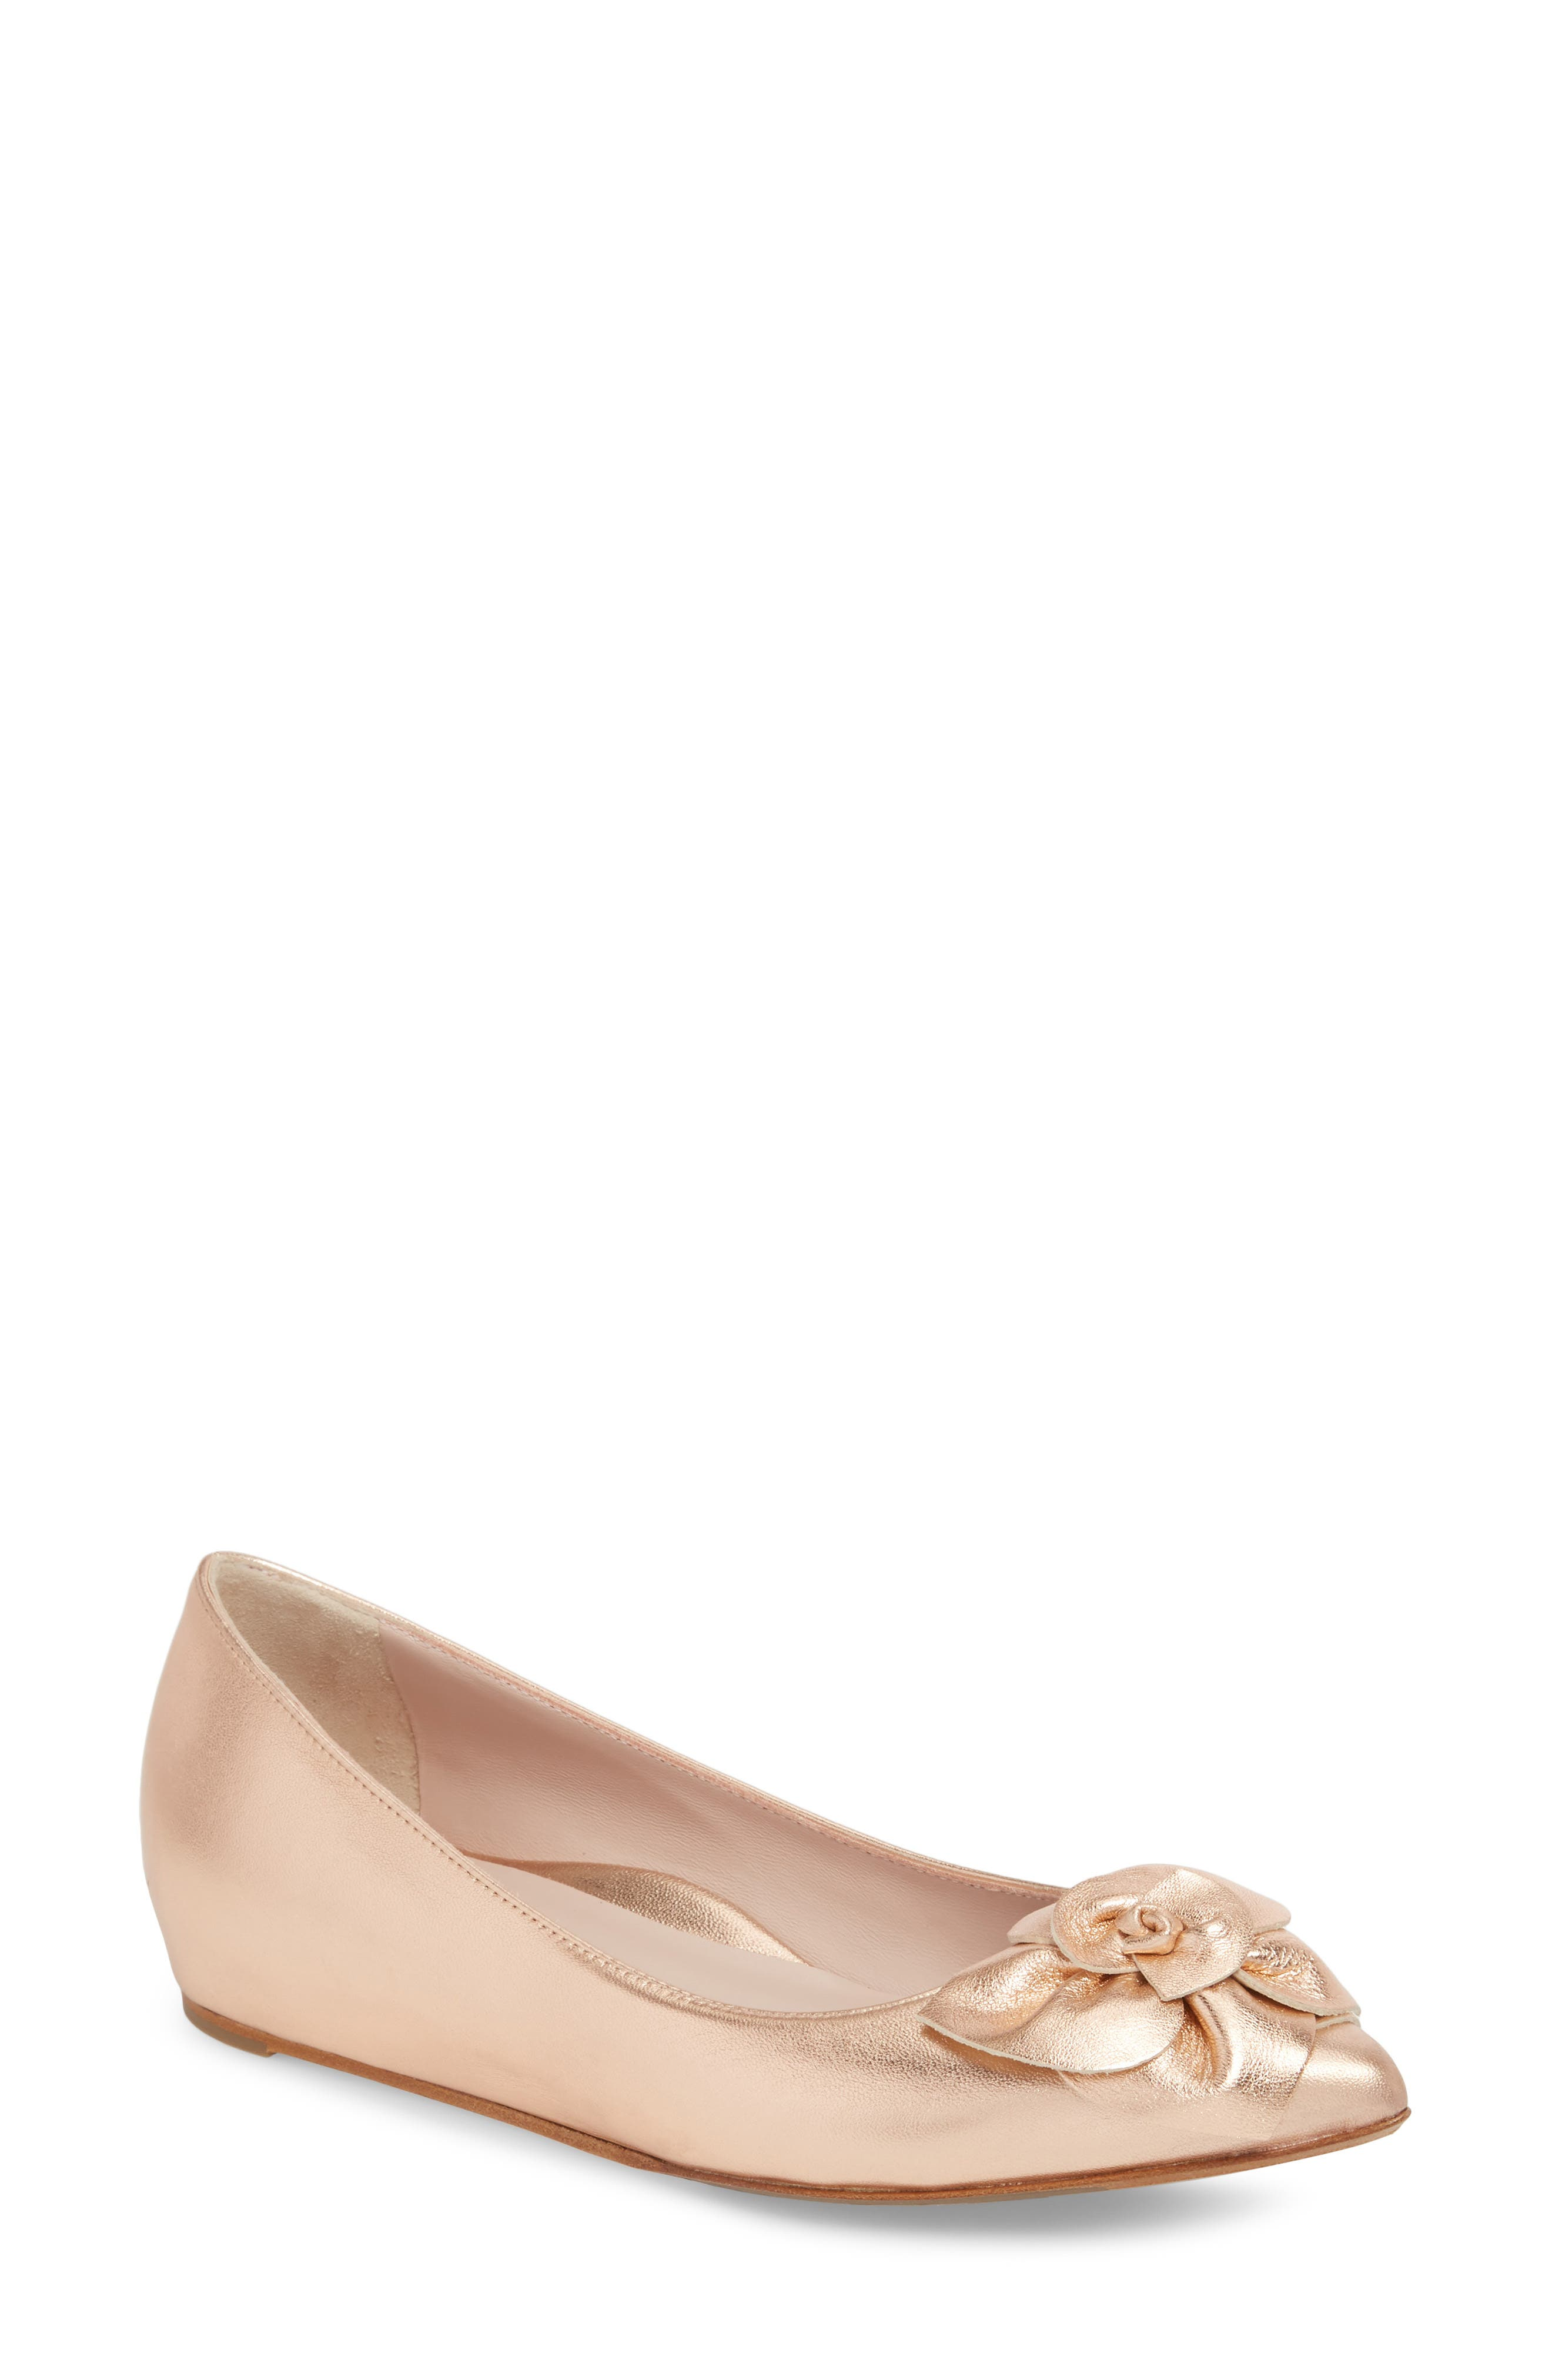 Rialta Flat,                             Main thumbnail 1, color,                             ROSE GOLD LEATHER